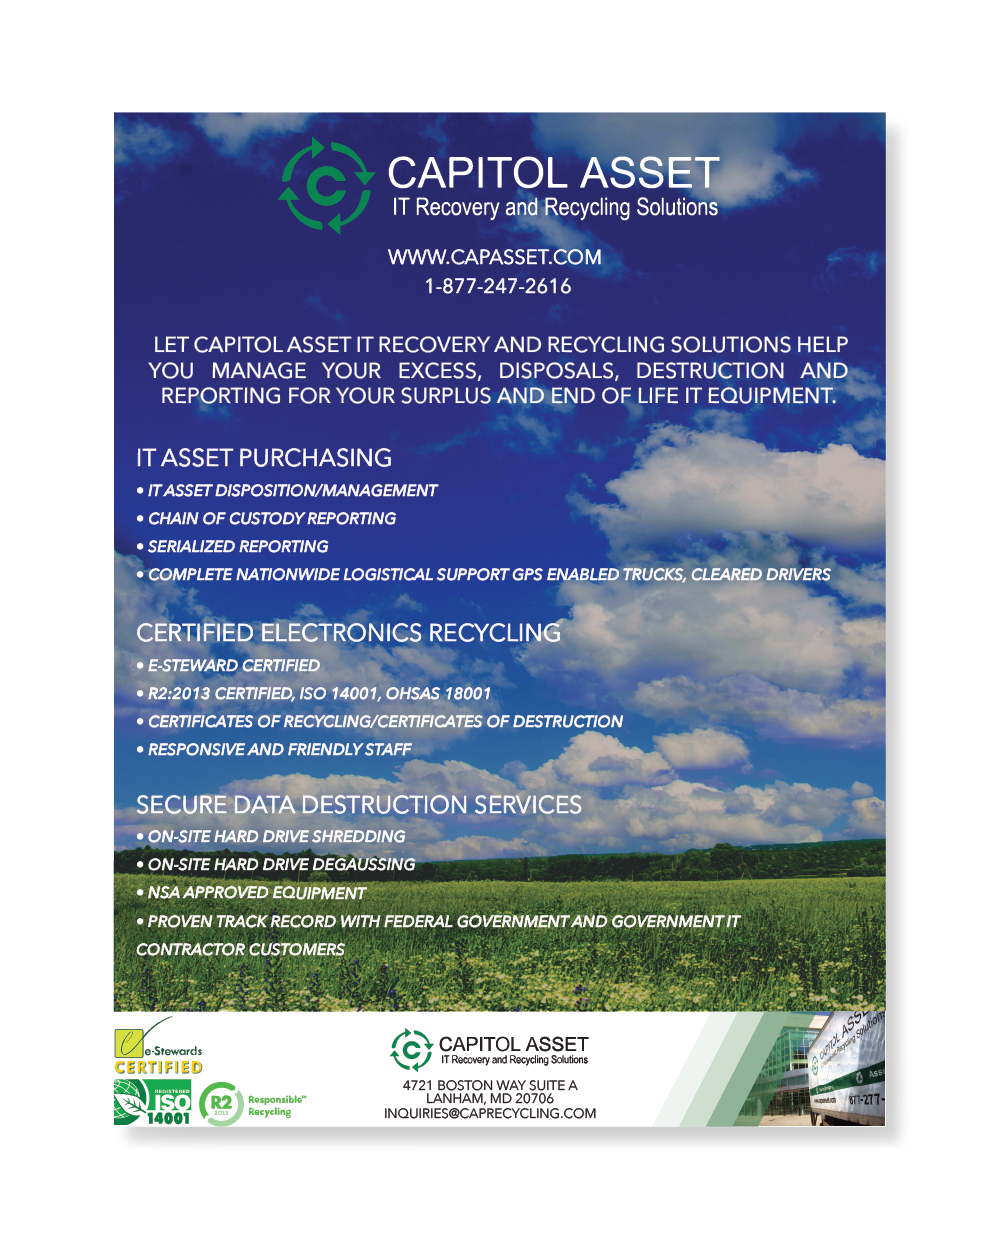 CapitolAsset-01.png